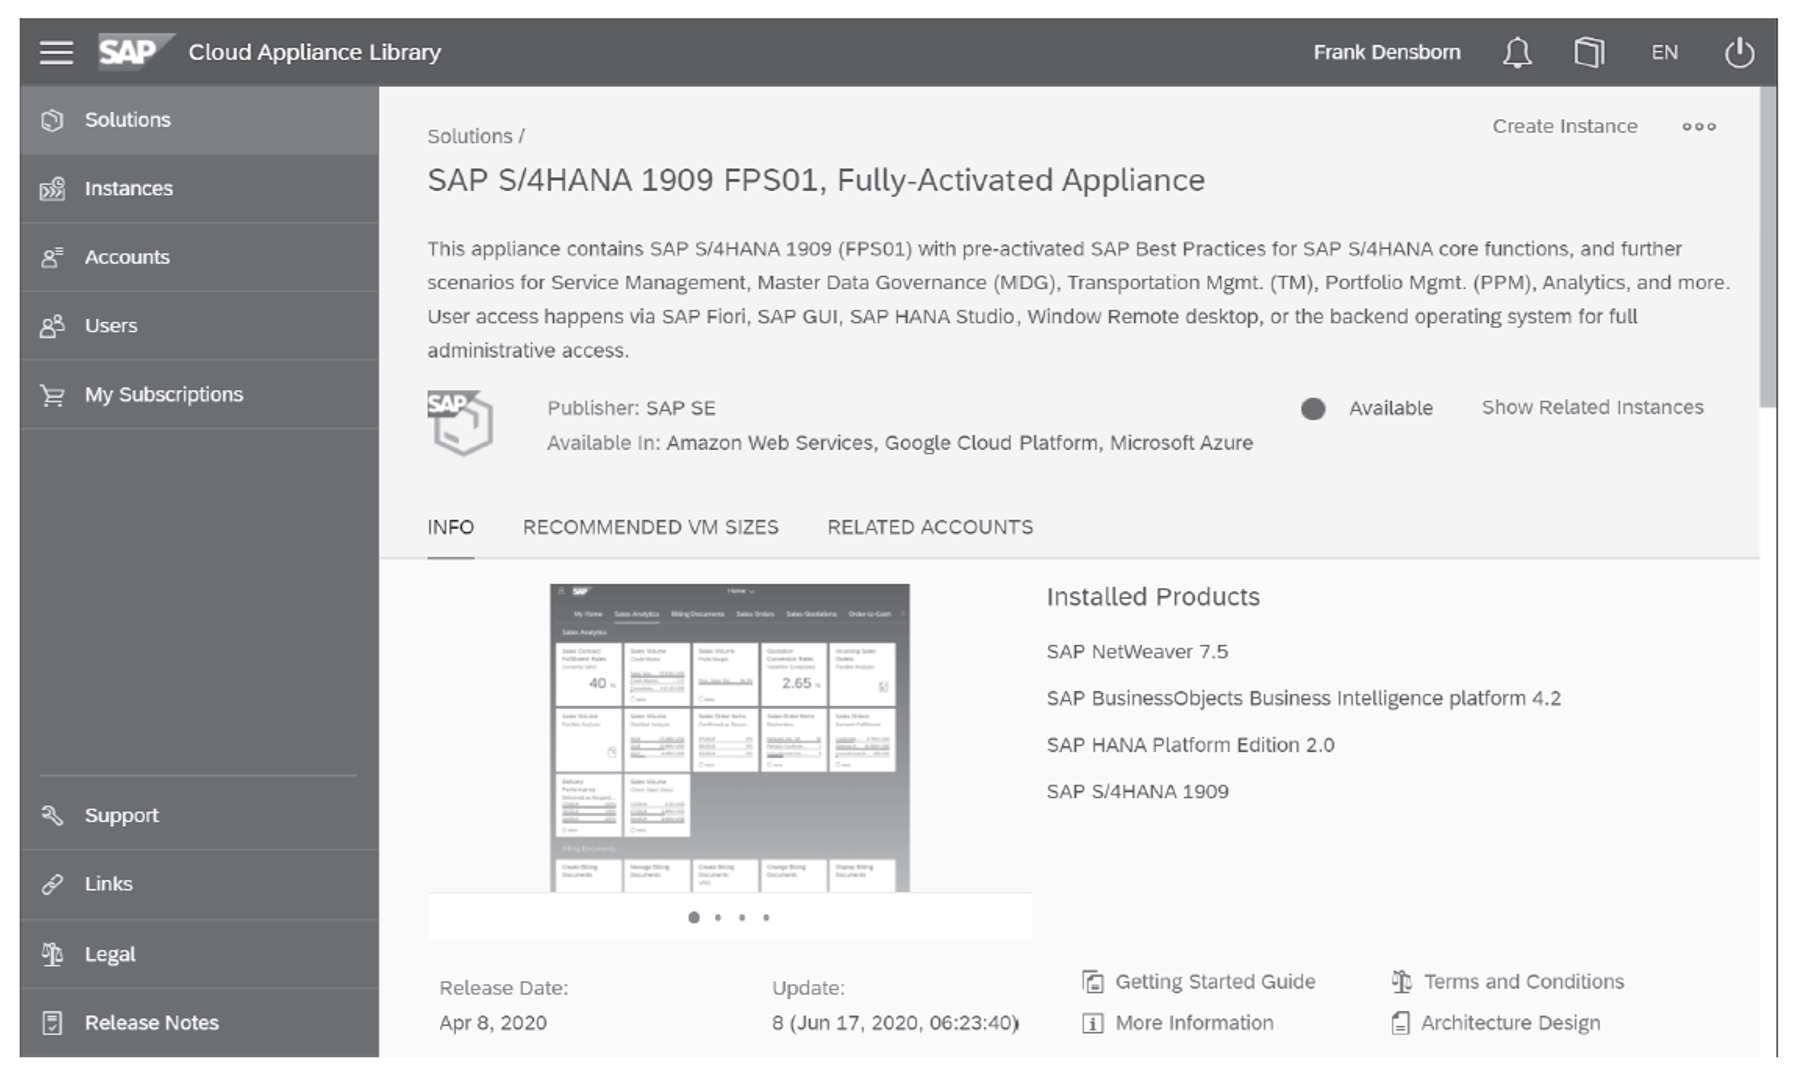 SAP S/4HANA 1909 Fully Activated Appliance in SAP Cloud Appliance Library